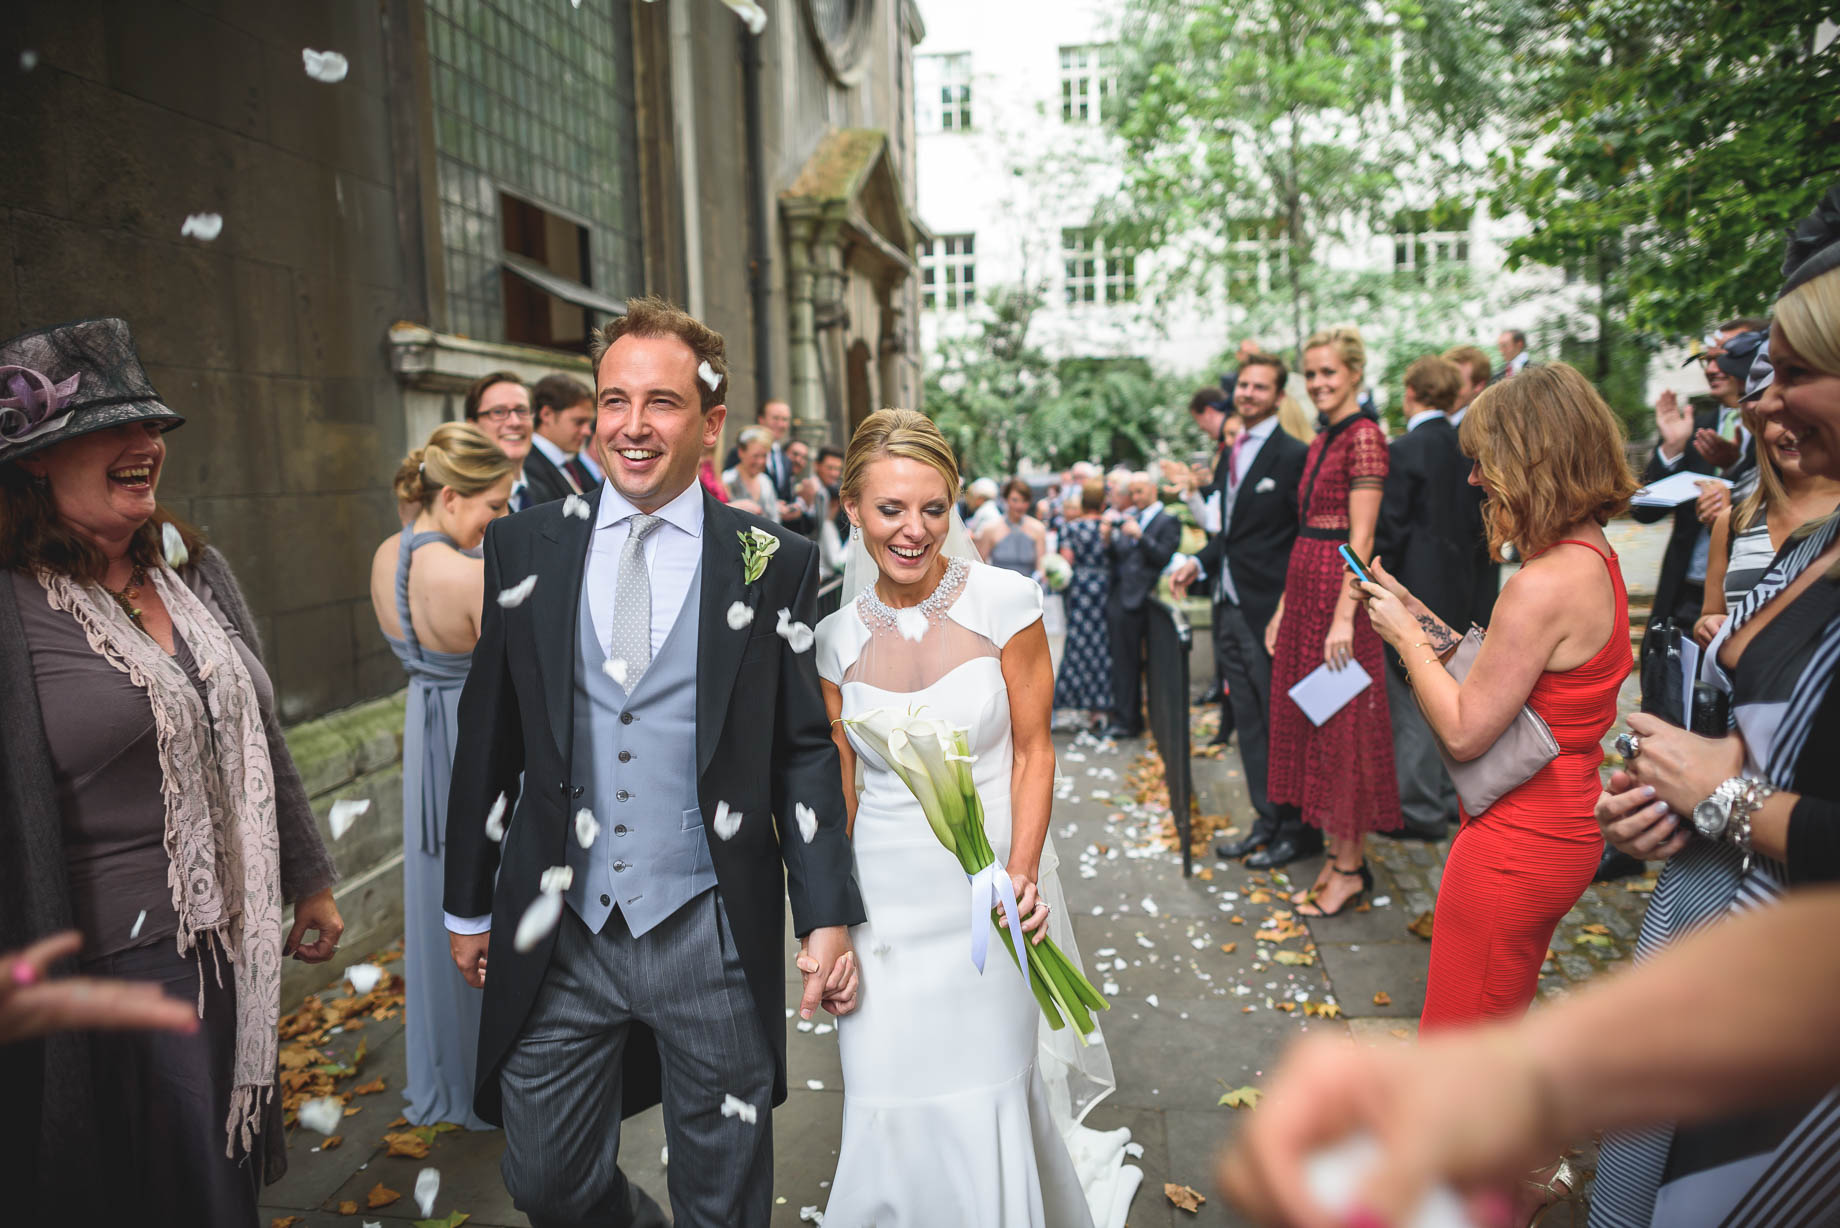 Shoreditch wedding photography - Guy Collier - Kat and Henry (86 of 200)